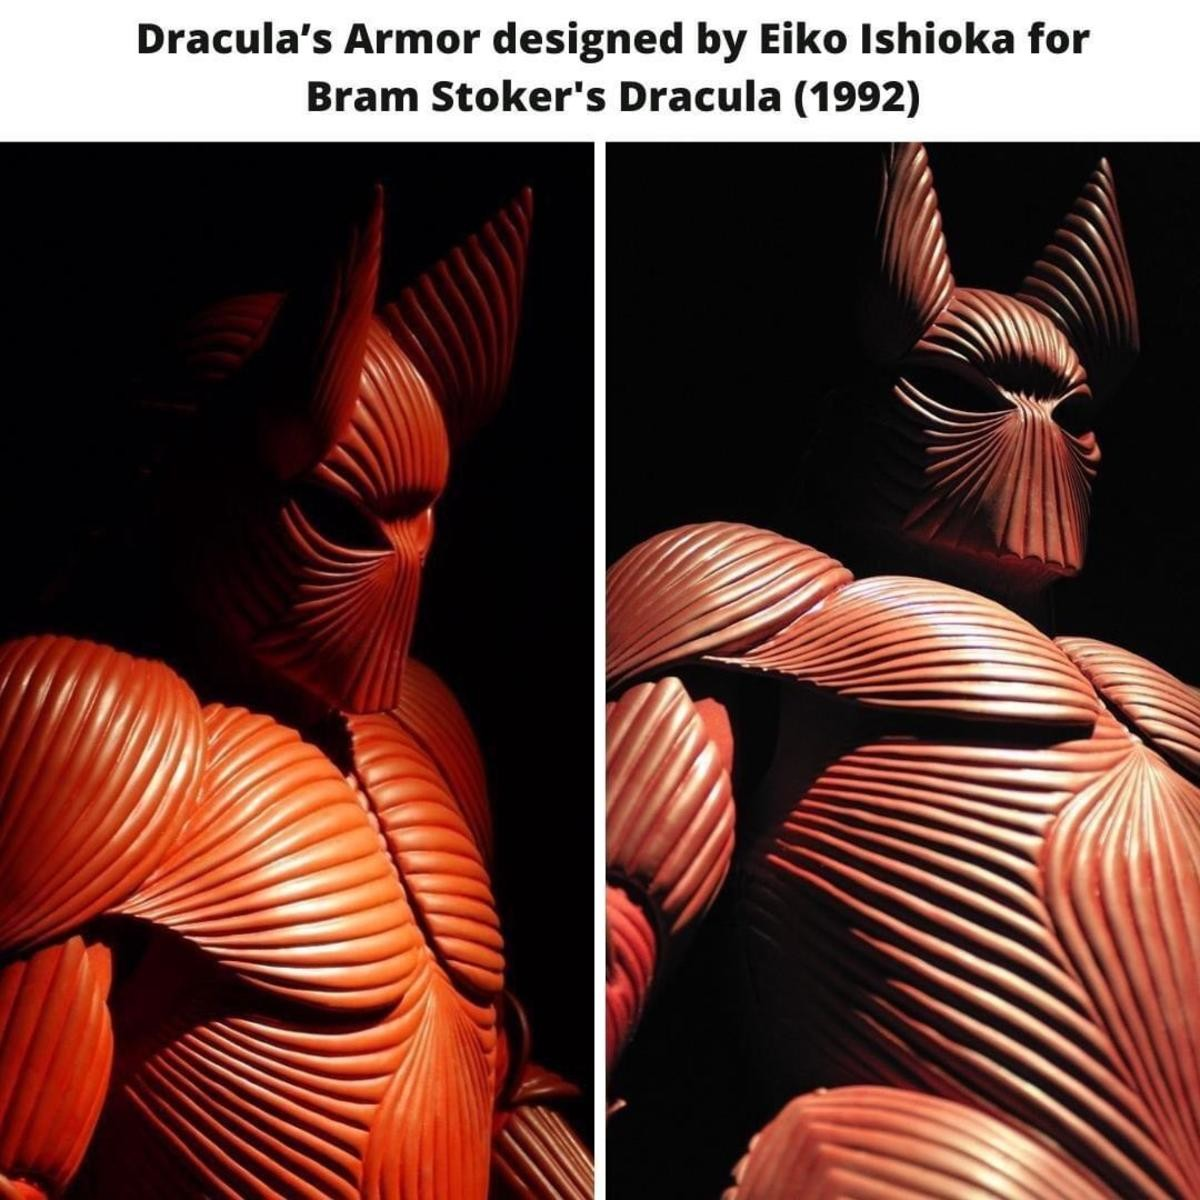 Dracula's Armor. .. That's a kickass design. Too bad he wears it for all of 20 seconds.